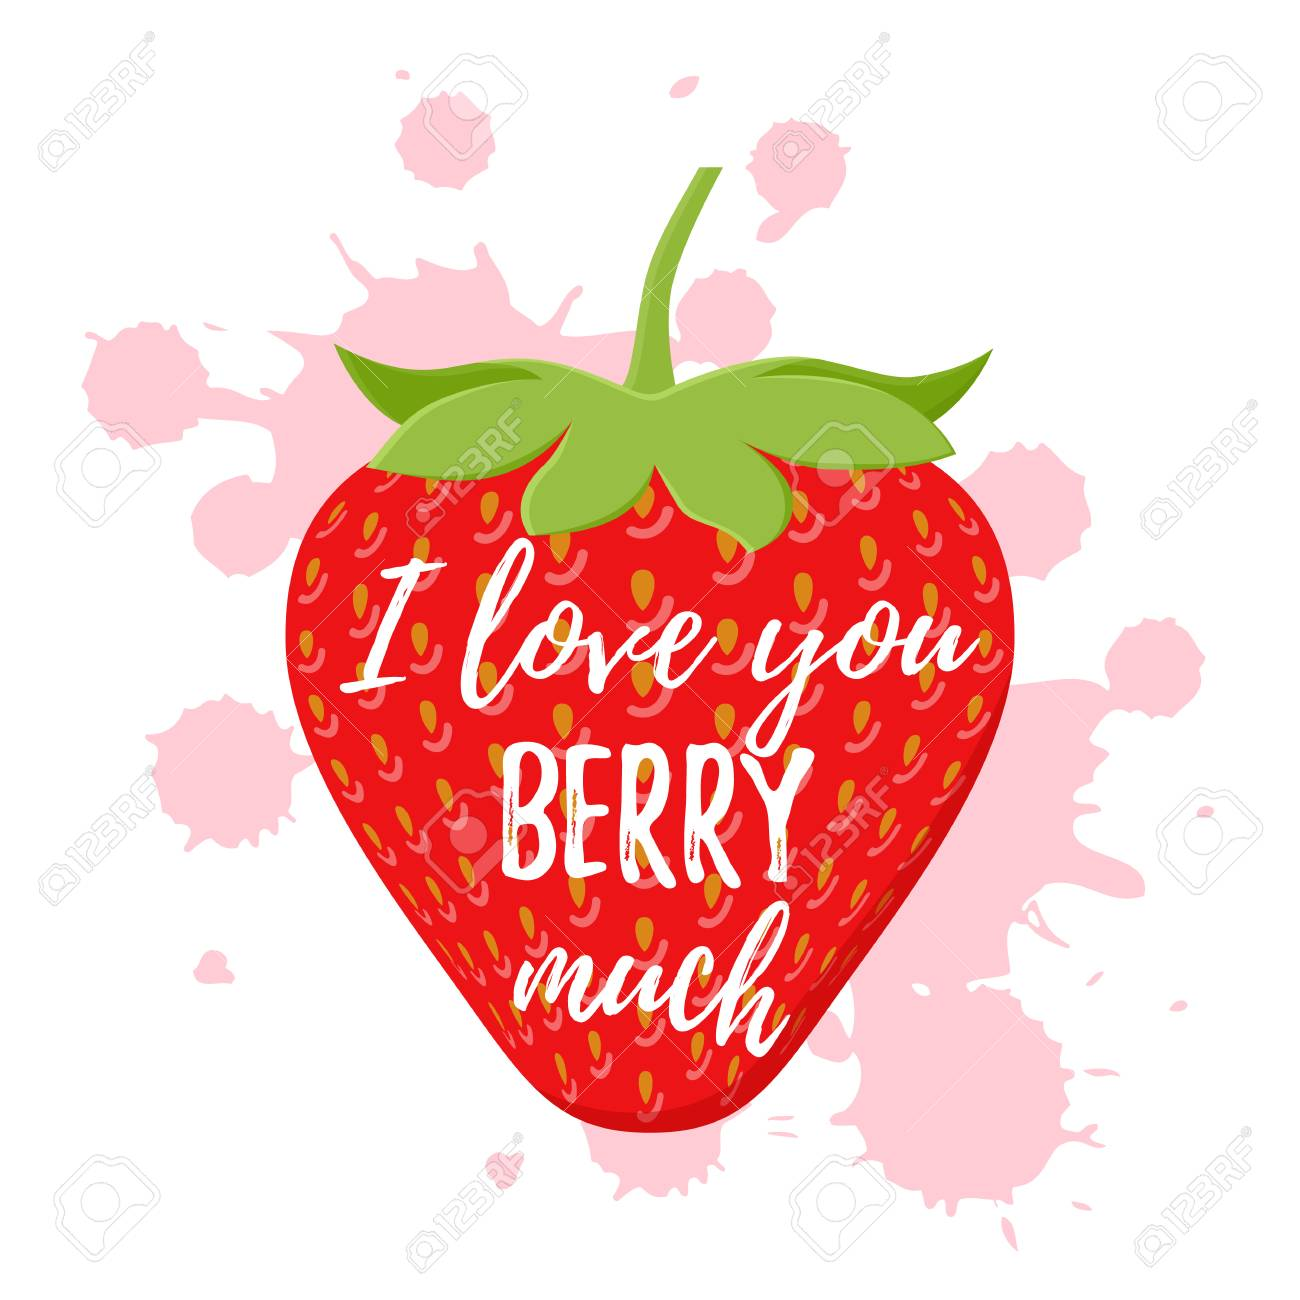 I love you berry much, cute pun with strawberry. Vector. Love quote design